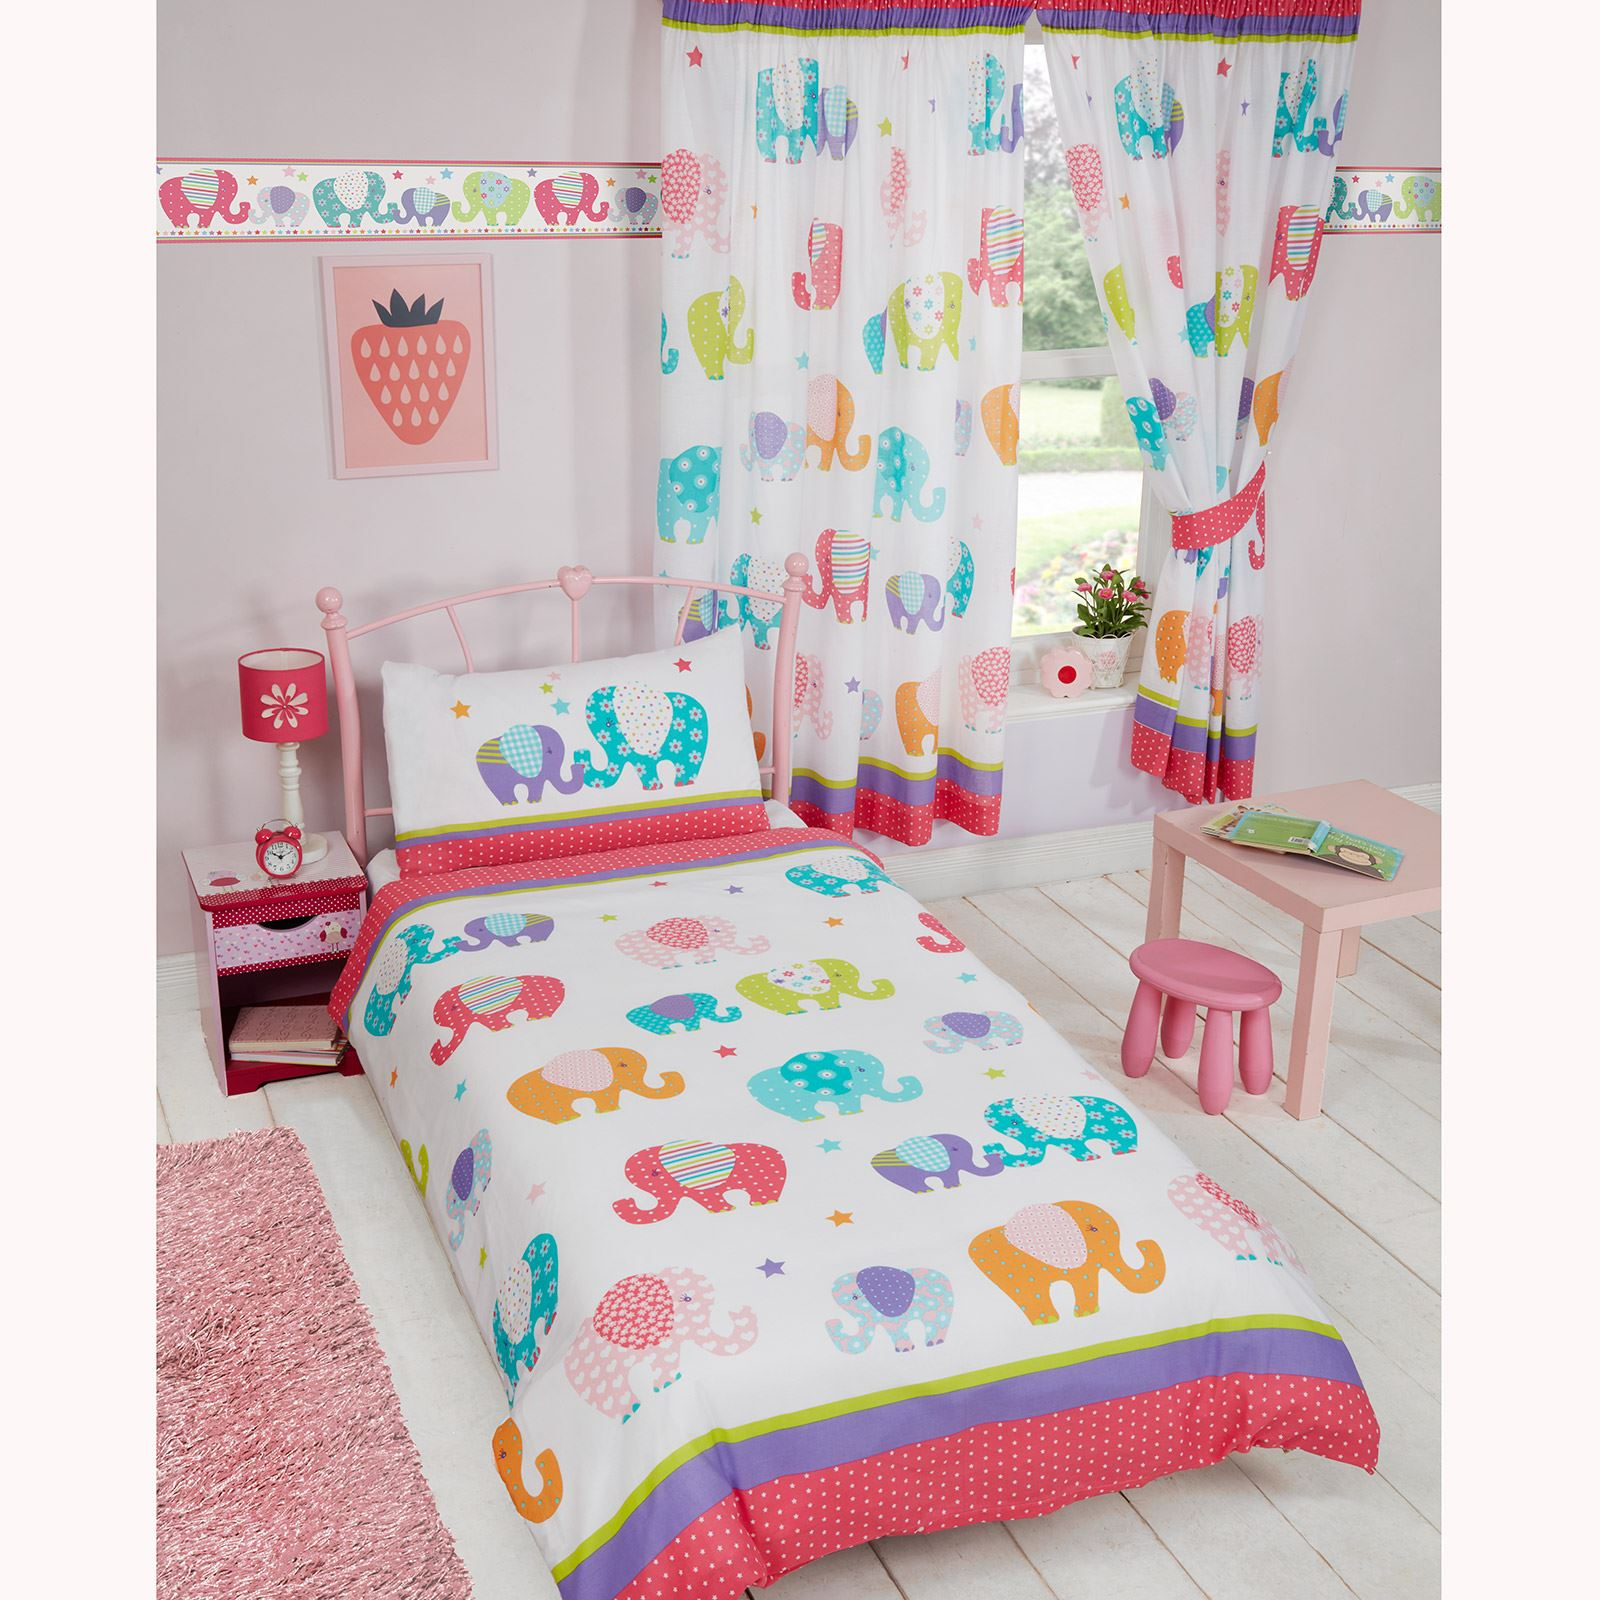 junior kleinkind bettbezug sets kinderbett bettw sche unicorn dinosaur solar ebay. Black Bedroom Furniture Sets. Home Design Ideas